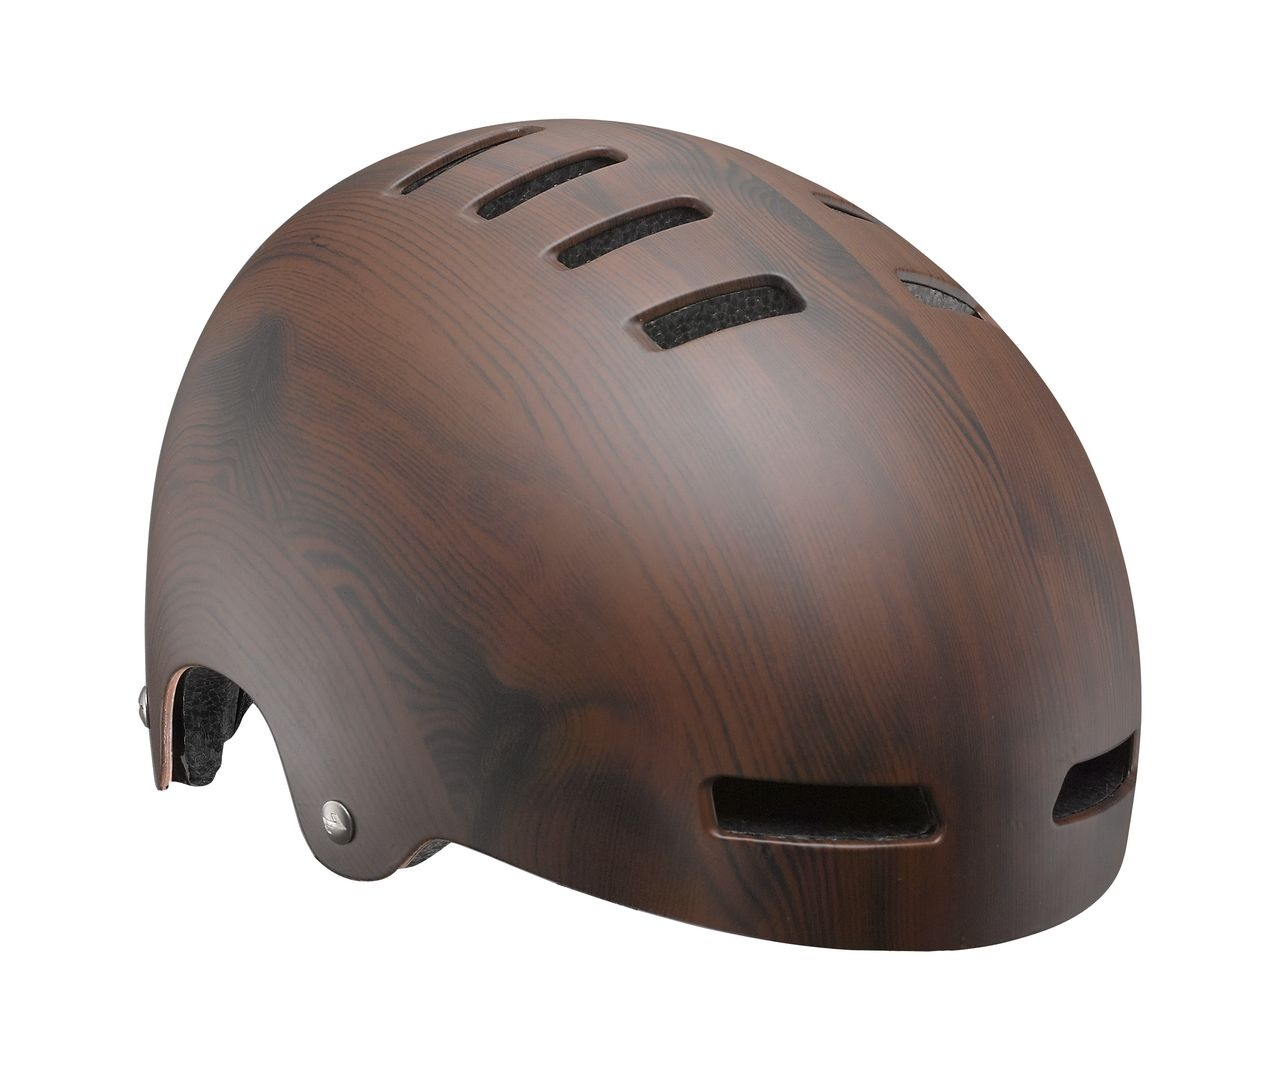 Casque Lazer STREET DELUX Brown Wood - S (52-56)